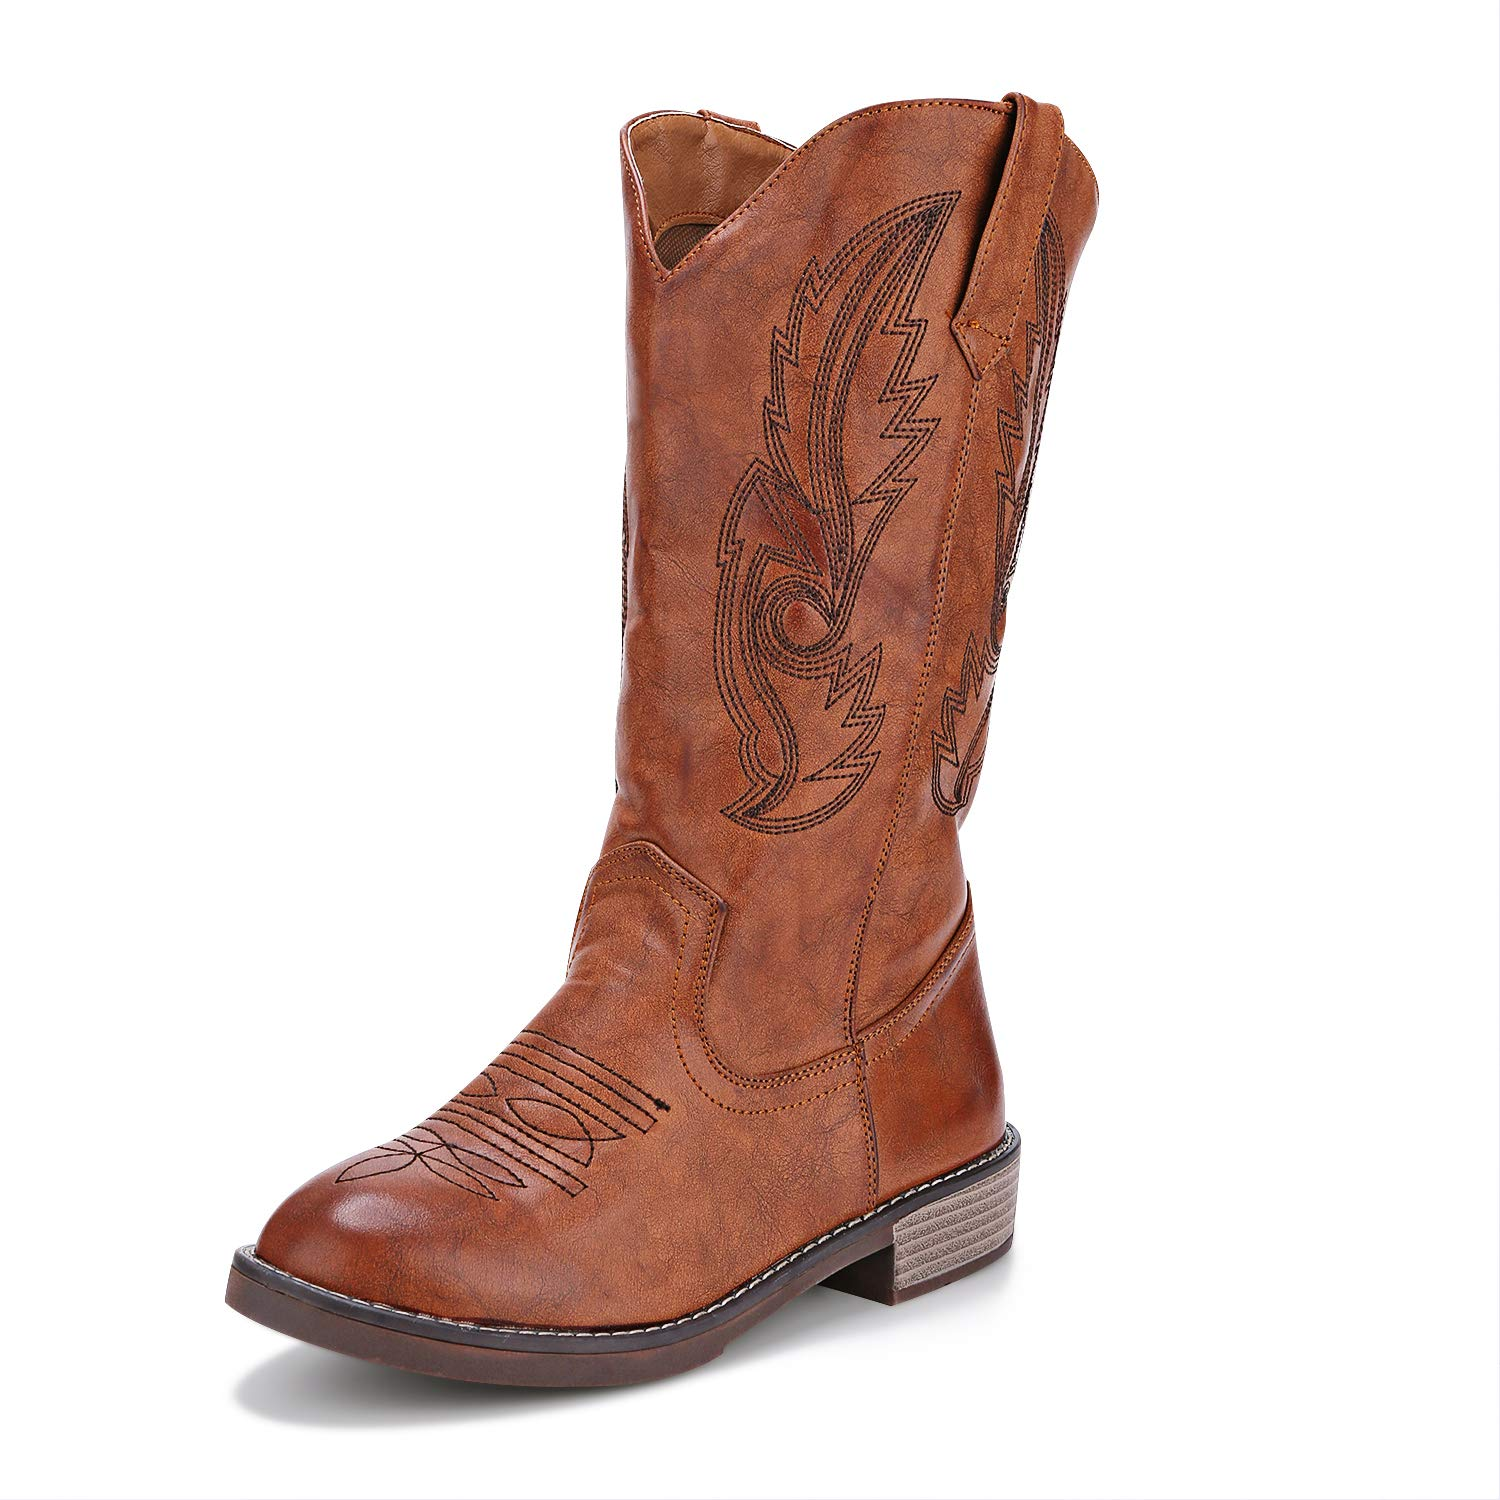 28ecdf19bb3 Freemin Women's Western Cowgirl Cowboy Boots Mid Calf Embroidered